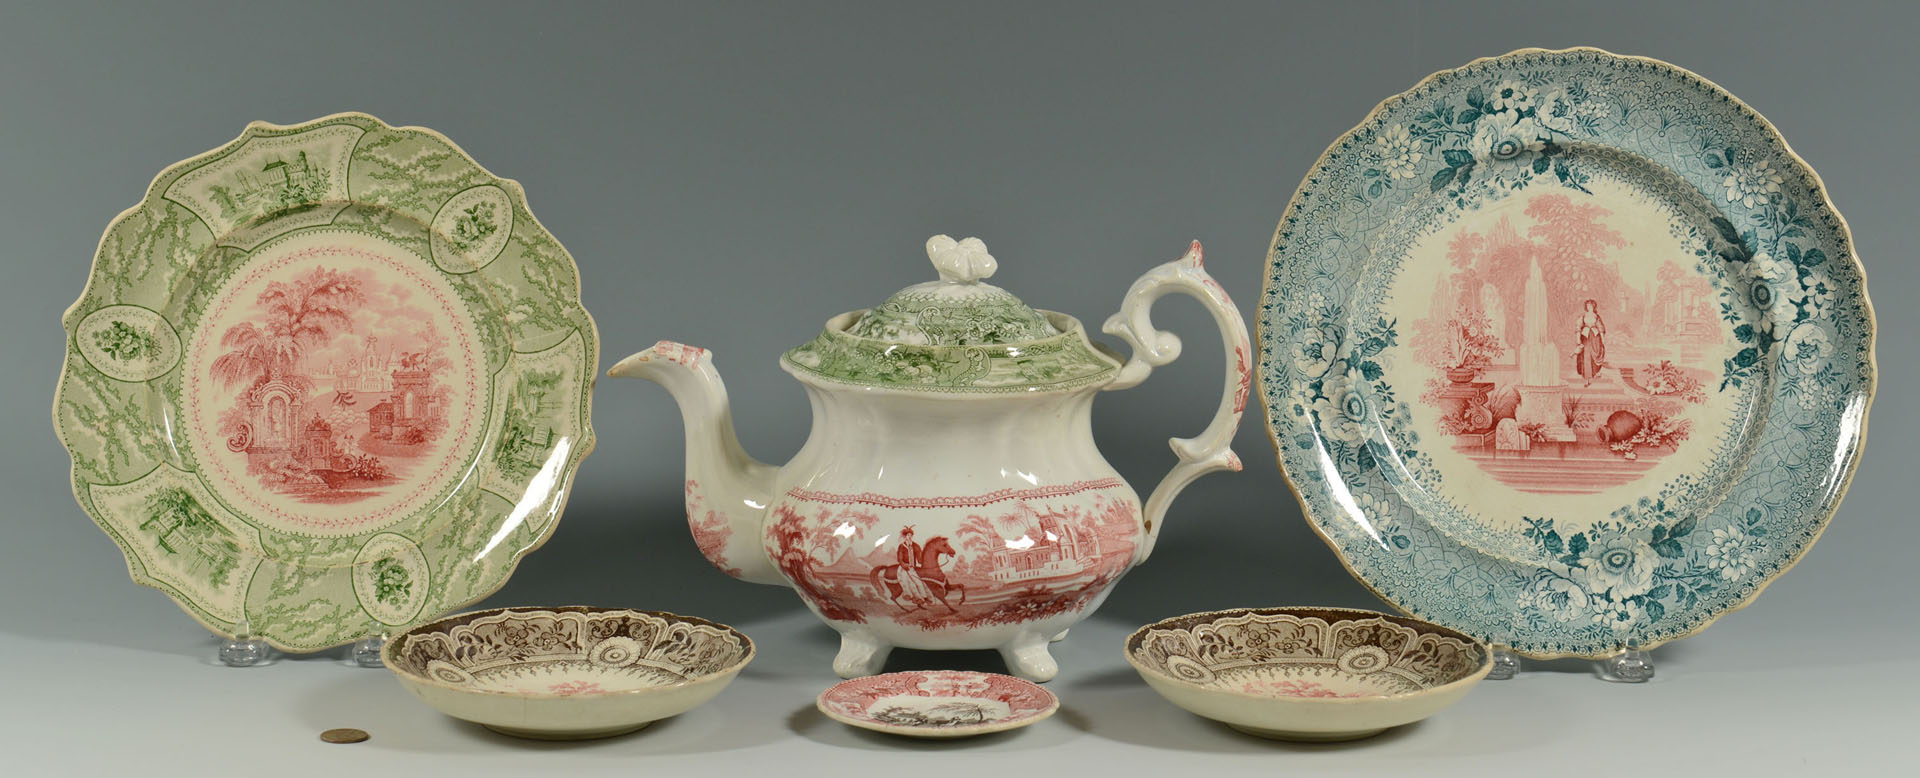 6 pcs Staffordshire 2- color transferware